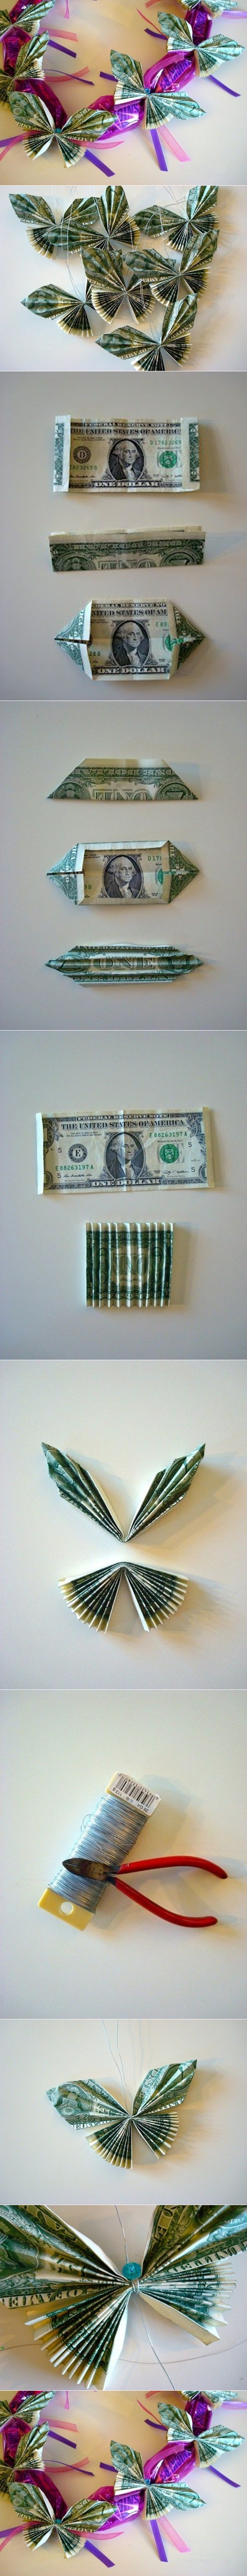 DIY Dollar Bill Butterfly